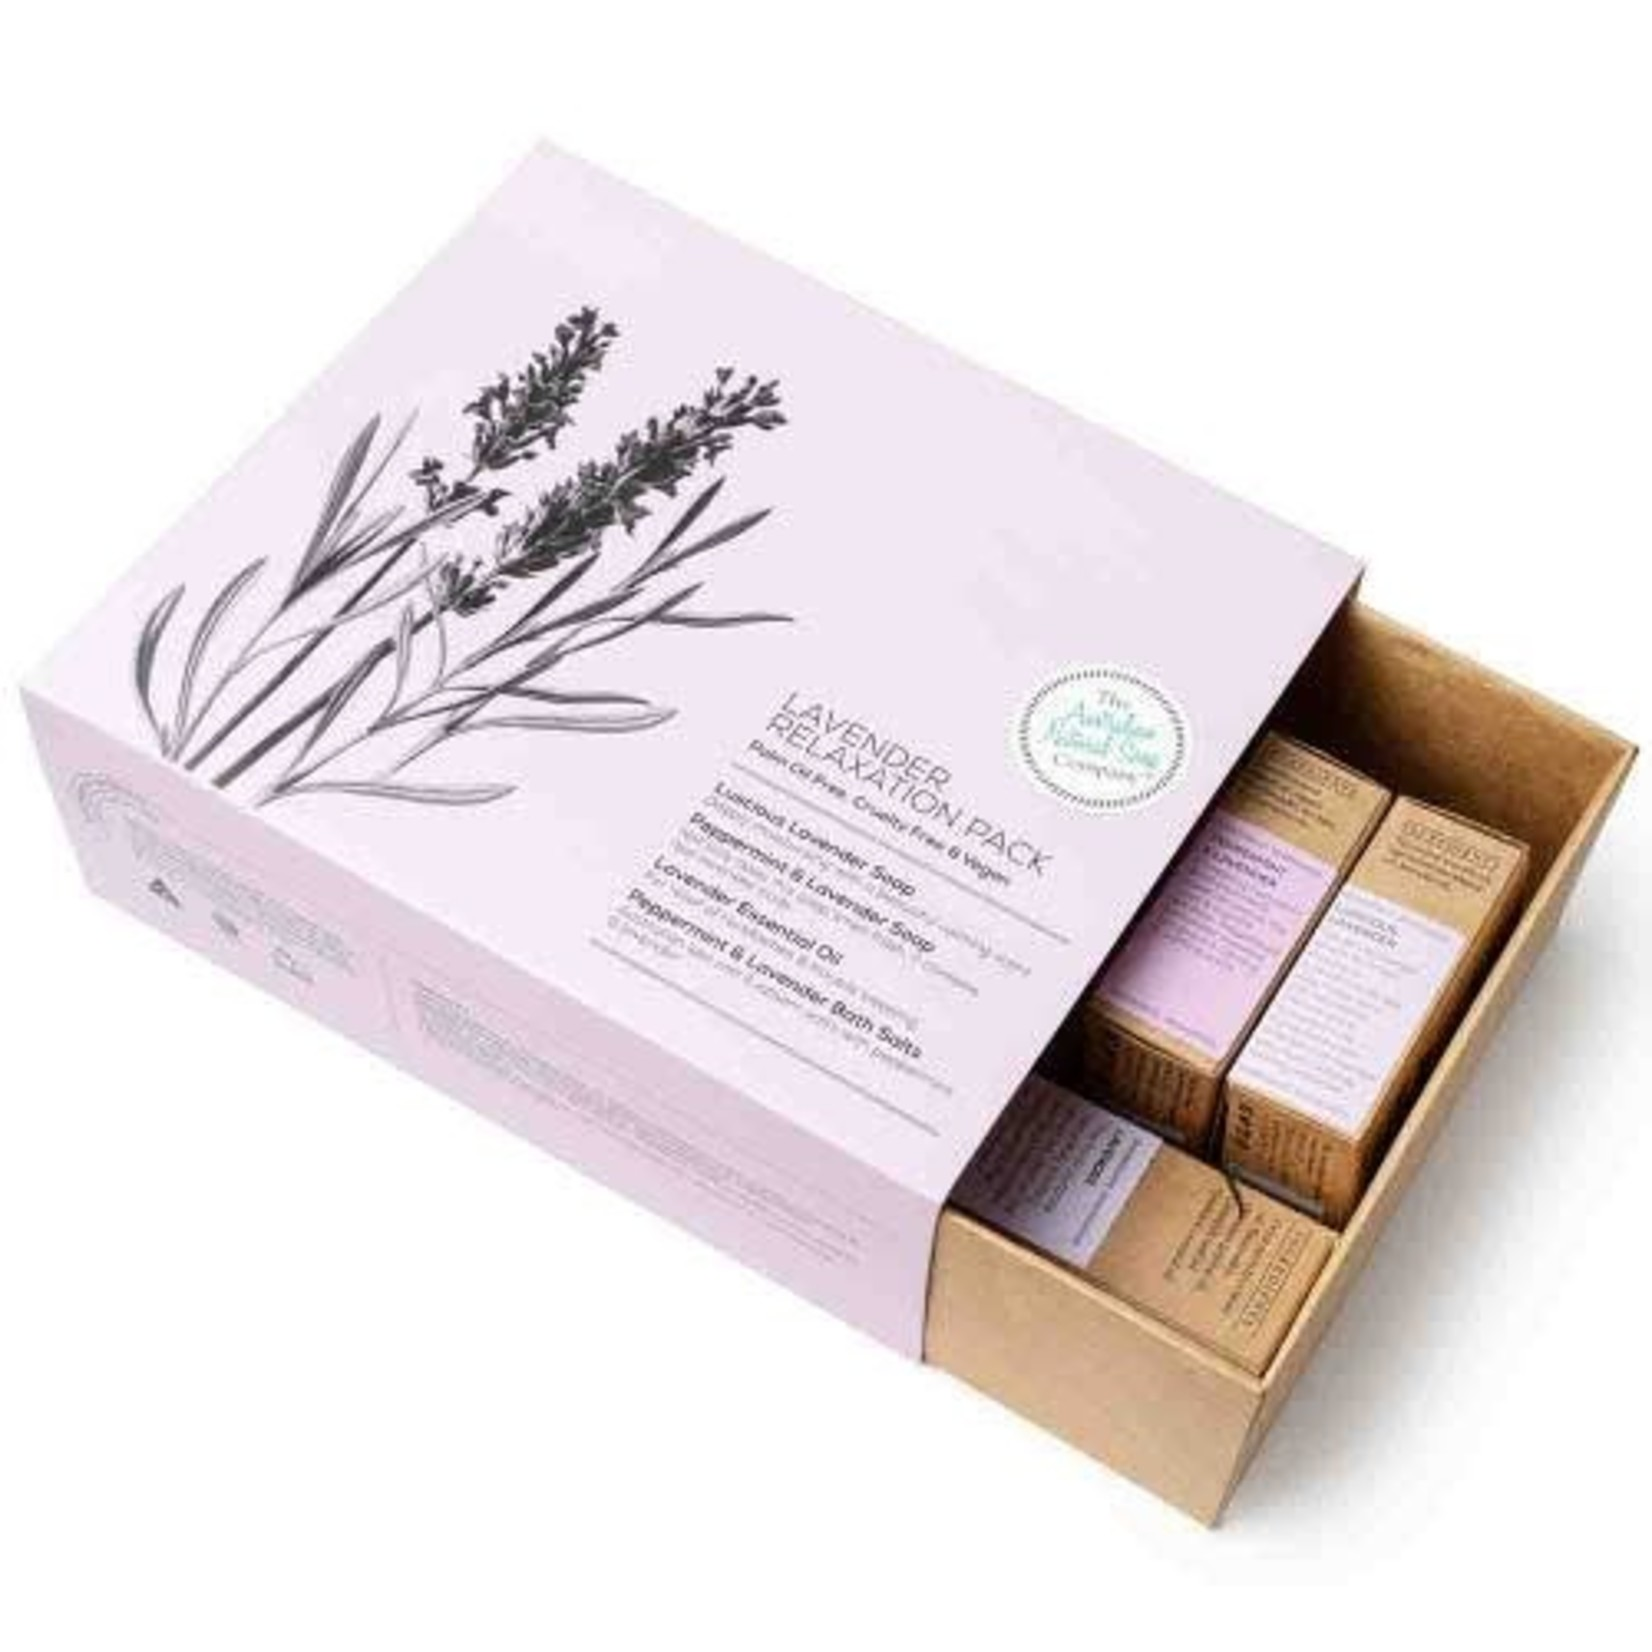 The Australian Natural Soap Company The Australian Natural Soap Company Lavender Relaxation Gift Pack